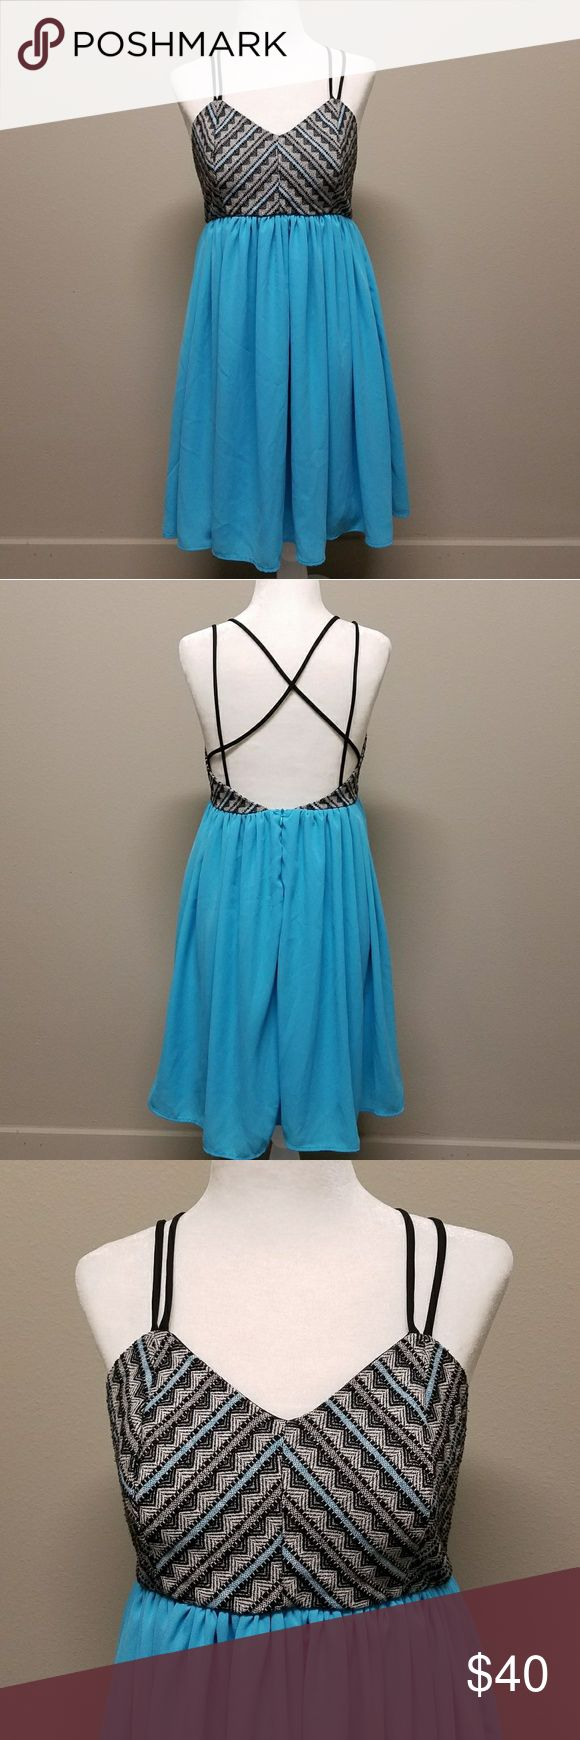 Altar'd State Strappy back tribal top Dress Very cute! Has a scrappy back and flowy bottom. Altar'd State Dresses